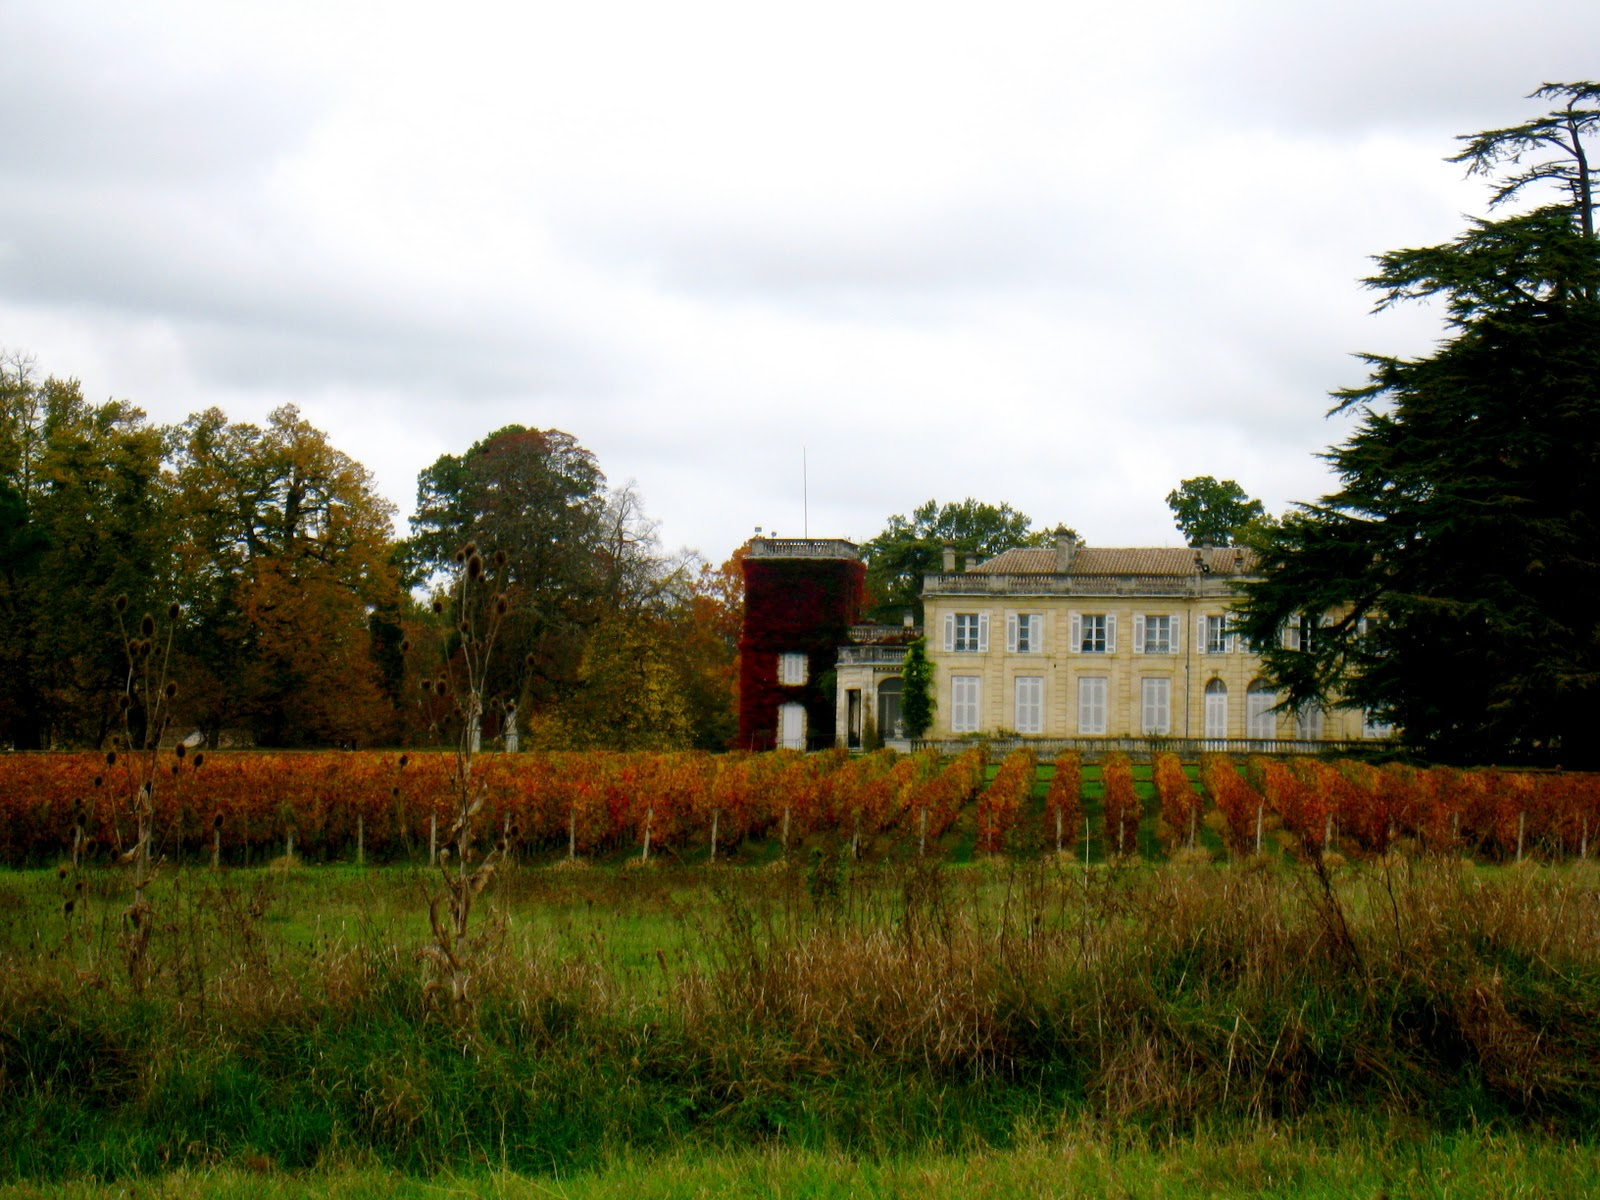 upon arriving in bordeaux we made an appointment to have a tour of the chateau du taillan vineyard in the le taillon mdoc region - Chateau Du Taillan Mariage